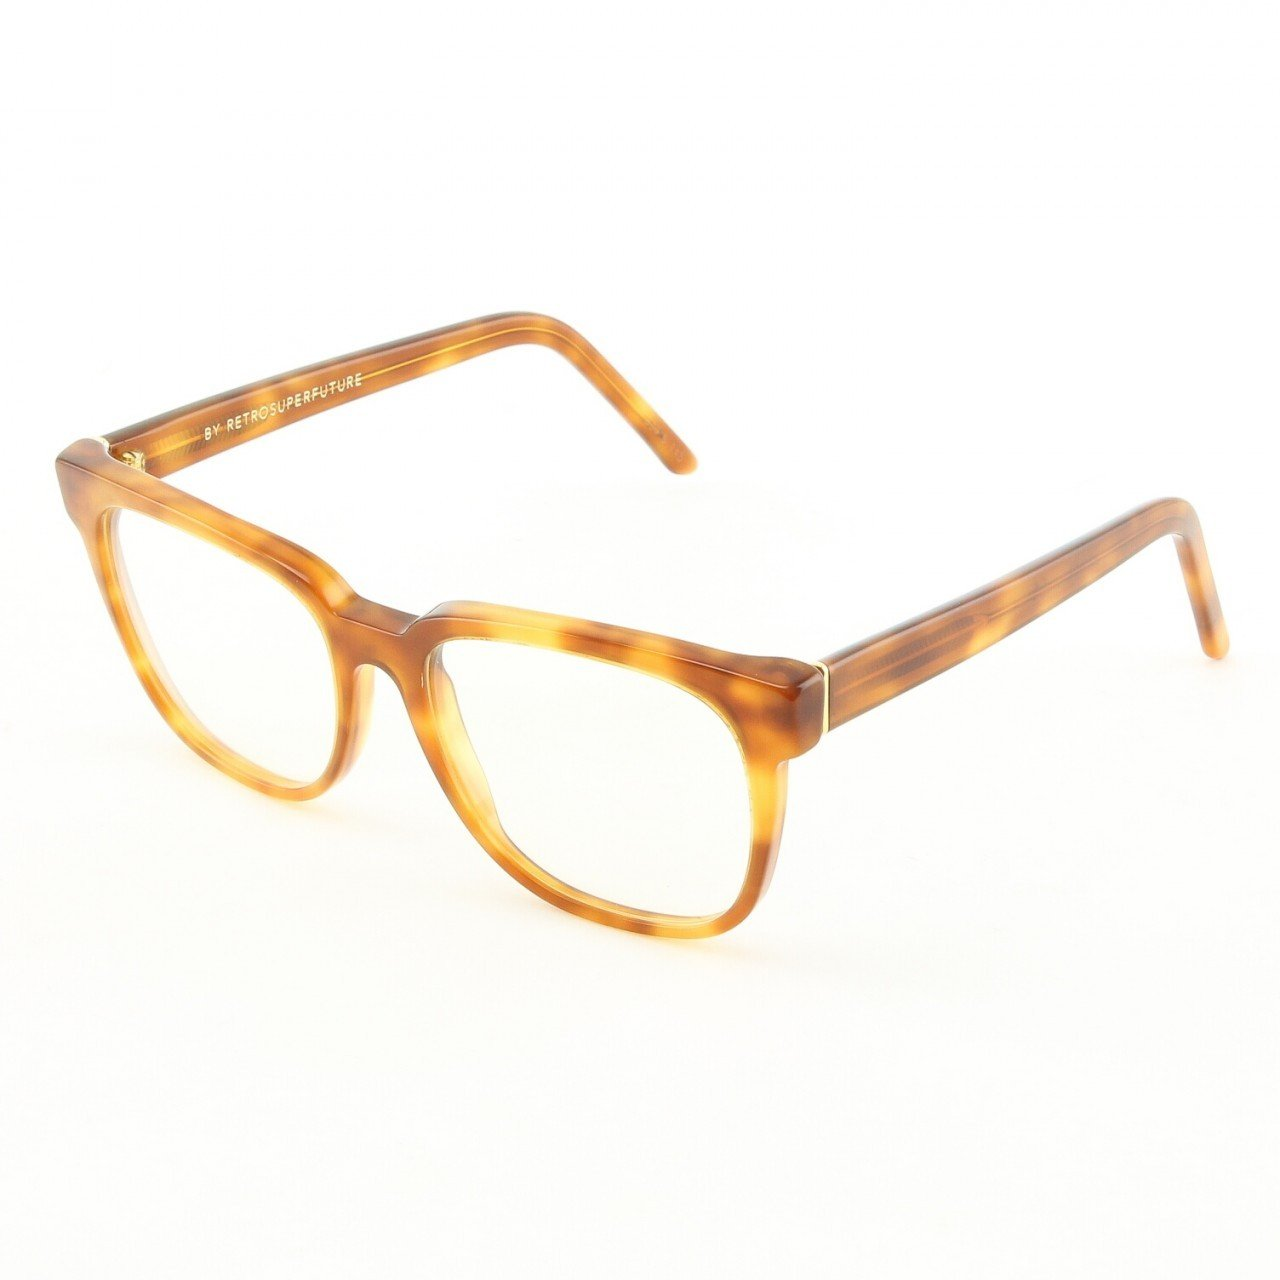 Super People 626 Eyeglasses Light Havana with Clear Zeiss Lenses by RETROSUPERFUTURE